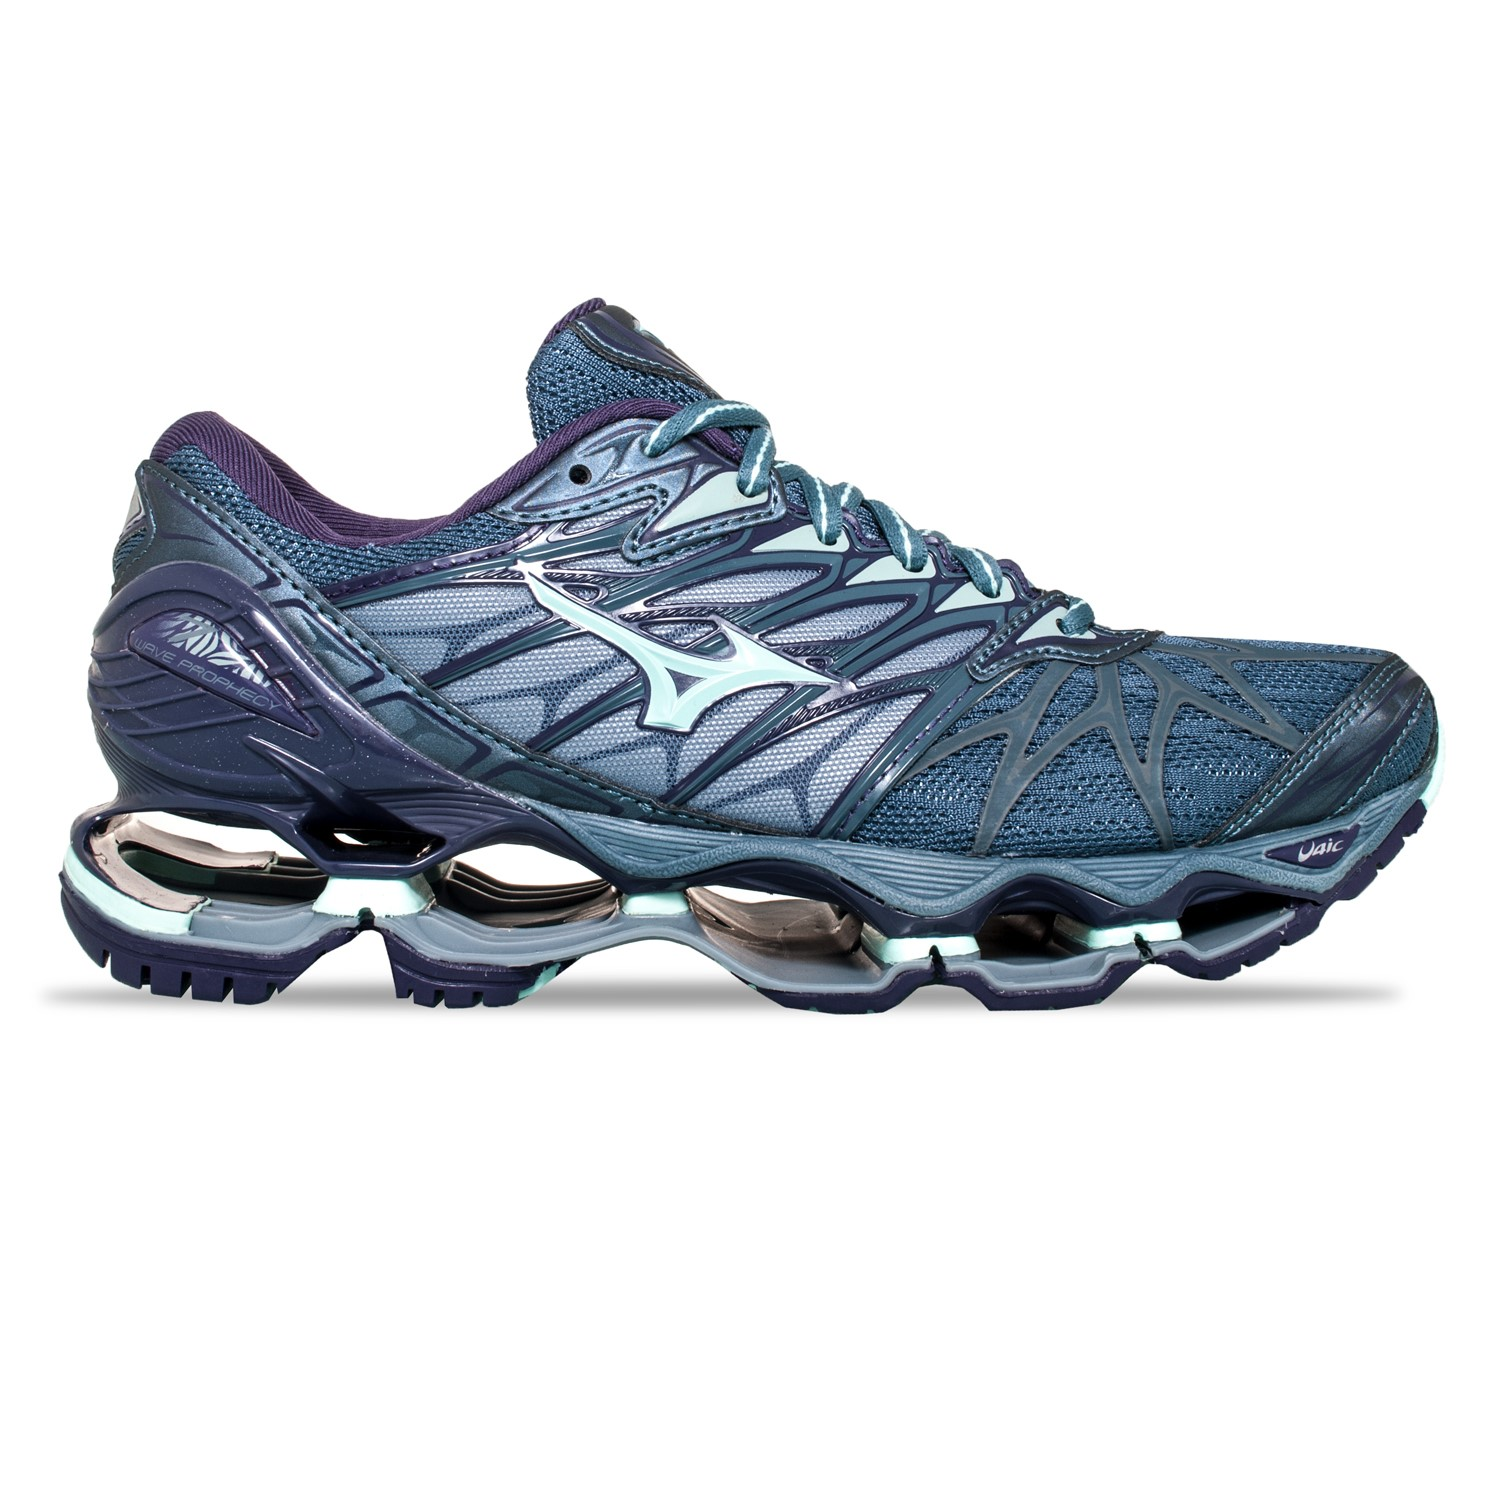 227588b2eff3 Mizuno Wave Prophecy 7 - Womens Running Shoes - Blue Mirage/Brook  Green/Purple